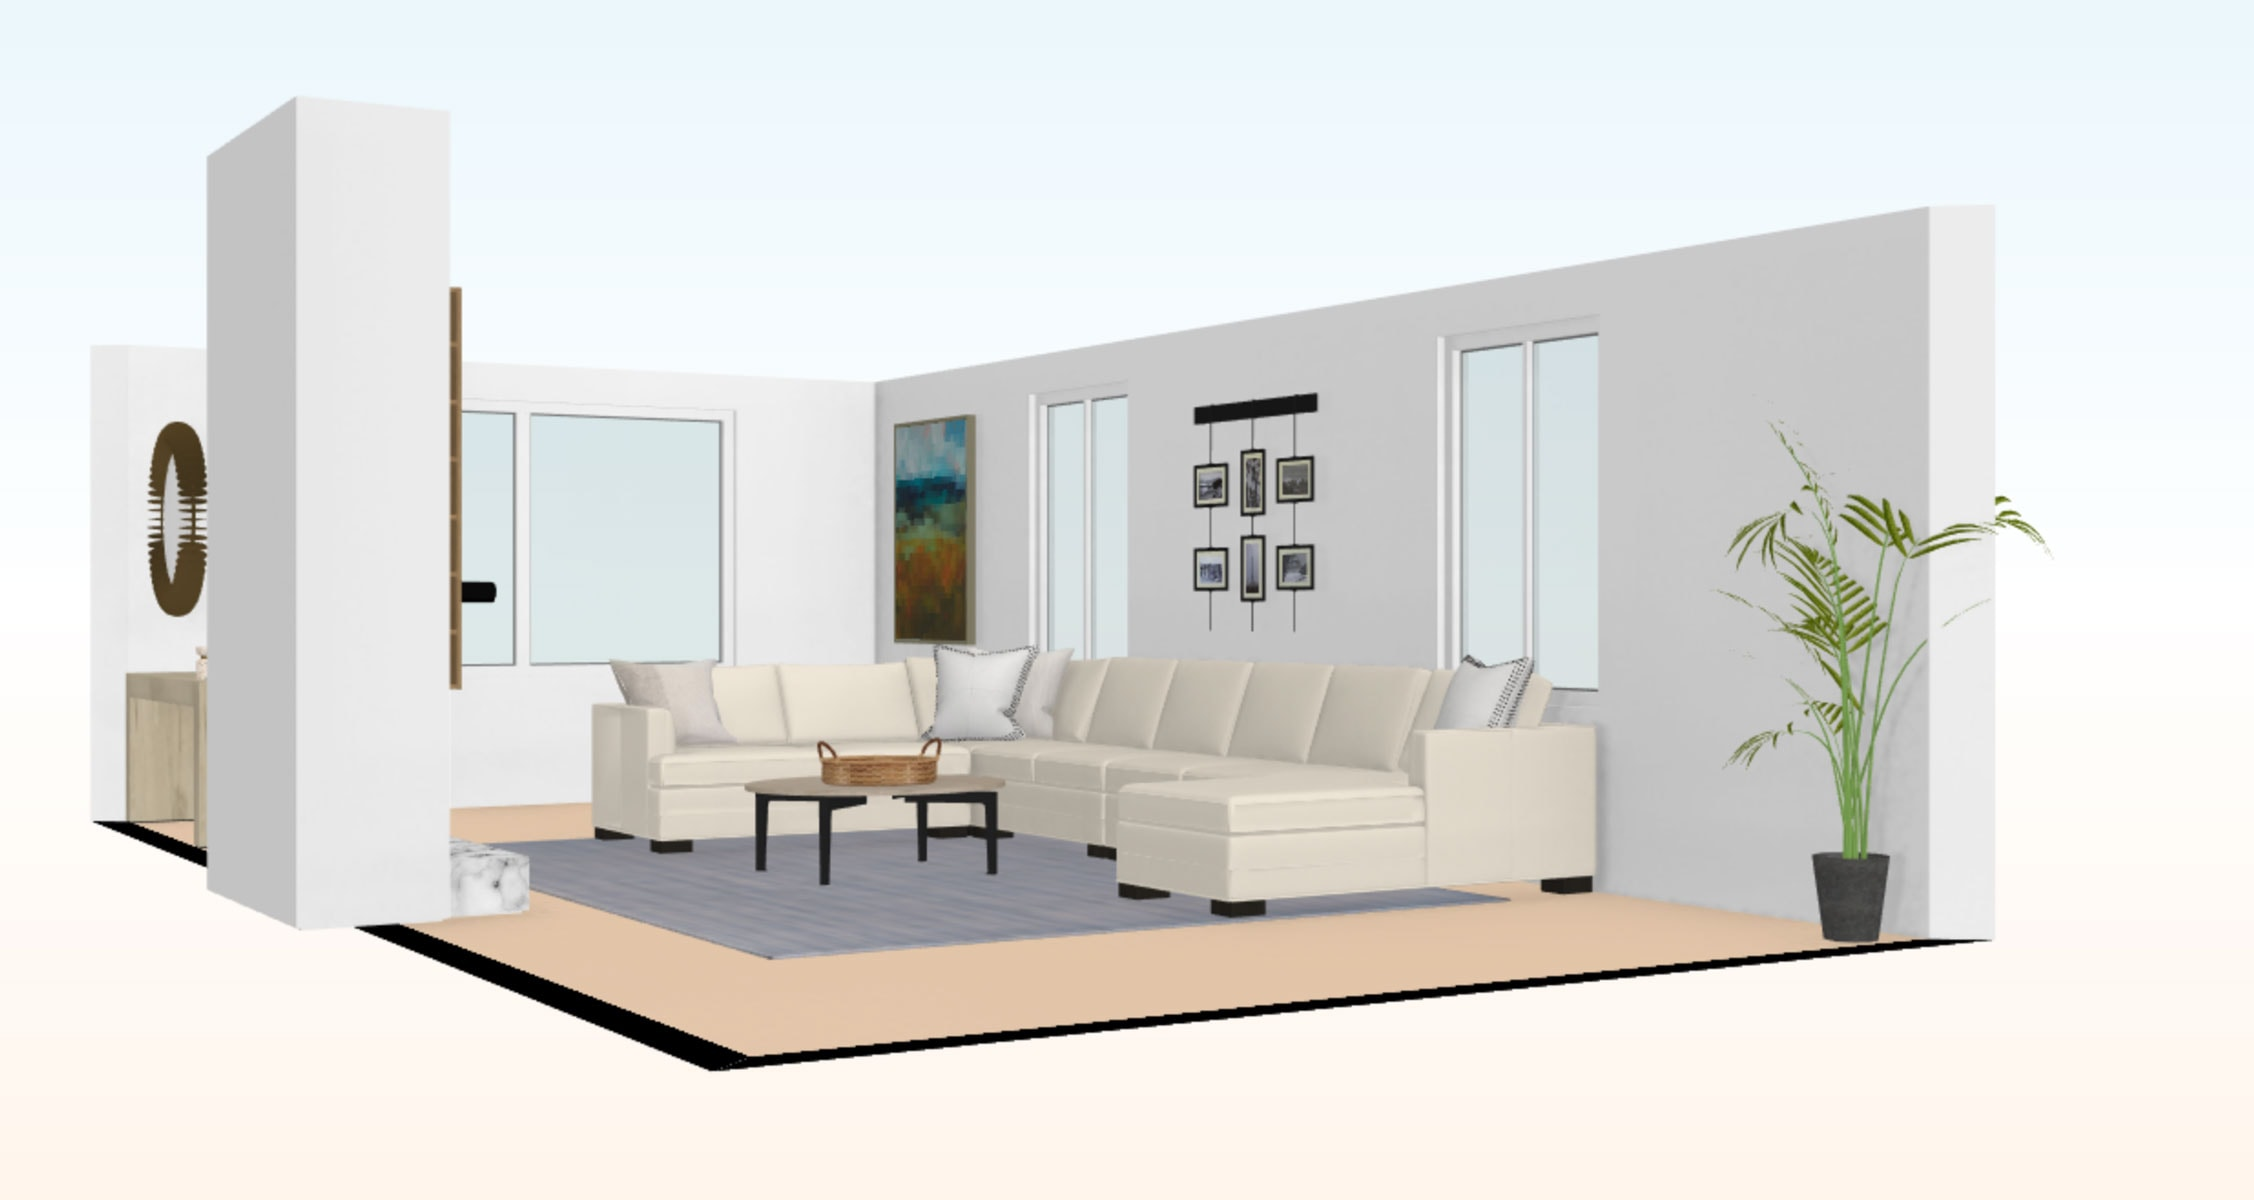 3d living room rendering to help with space planning and furniture layout